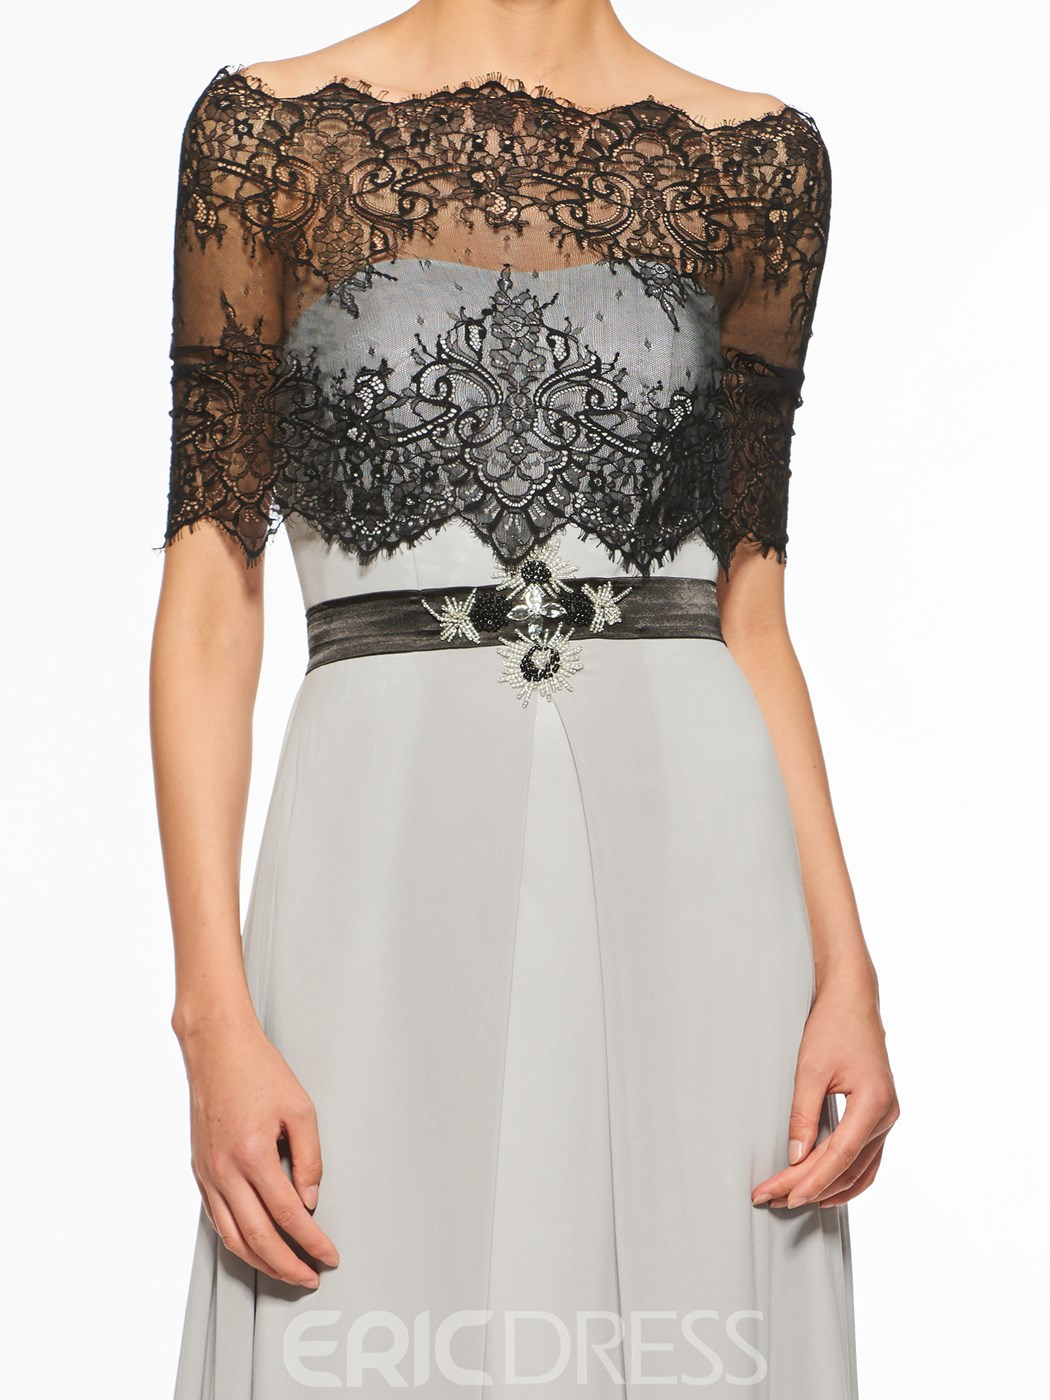 Ericdress Off The Shoulder Half Sleeves A Line Lace Mother Of The Bride Dress